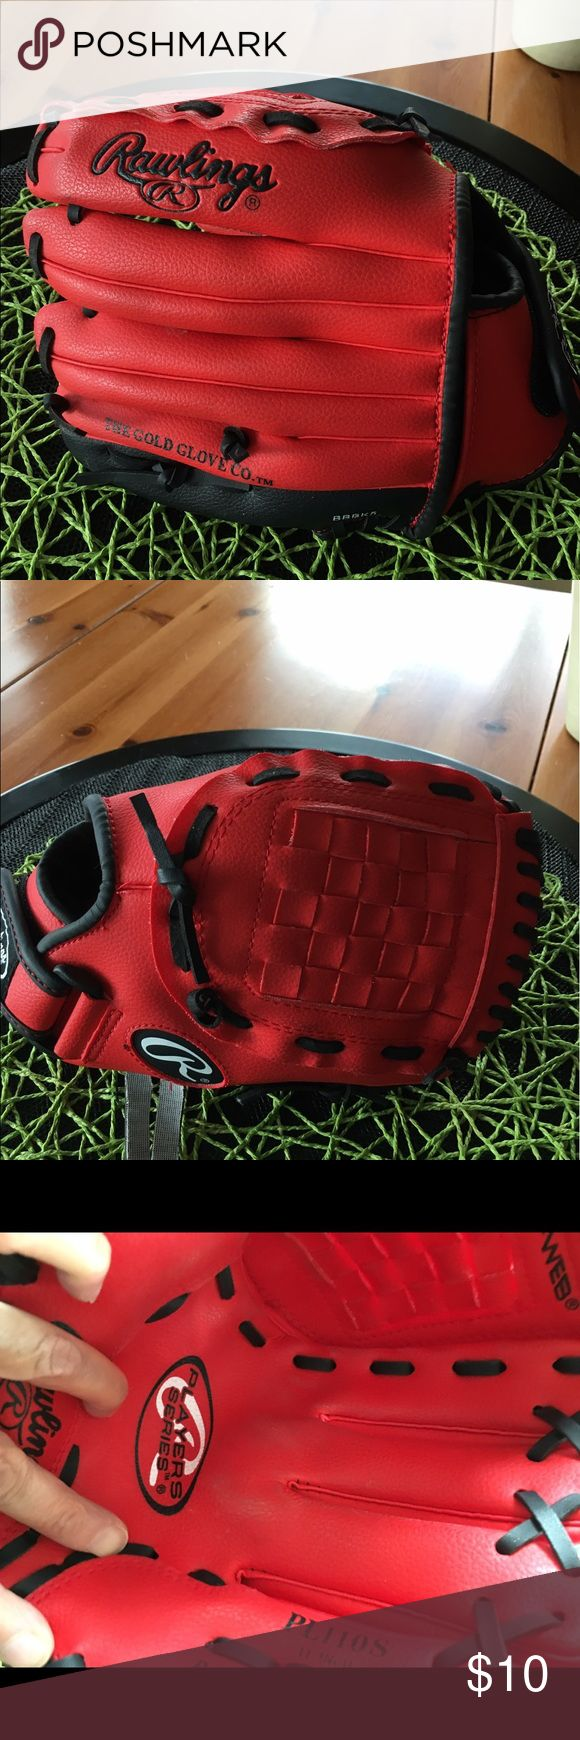 Youth baseball glove Red youth baseball glove. Used for 1/2 season like brand new. Not leather. Great for someone just starting out Other